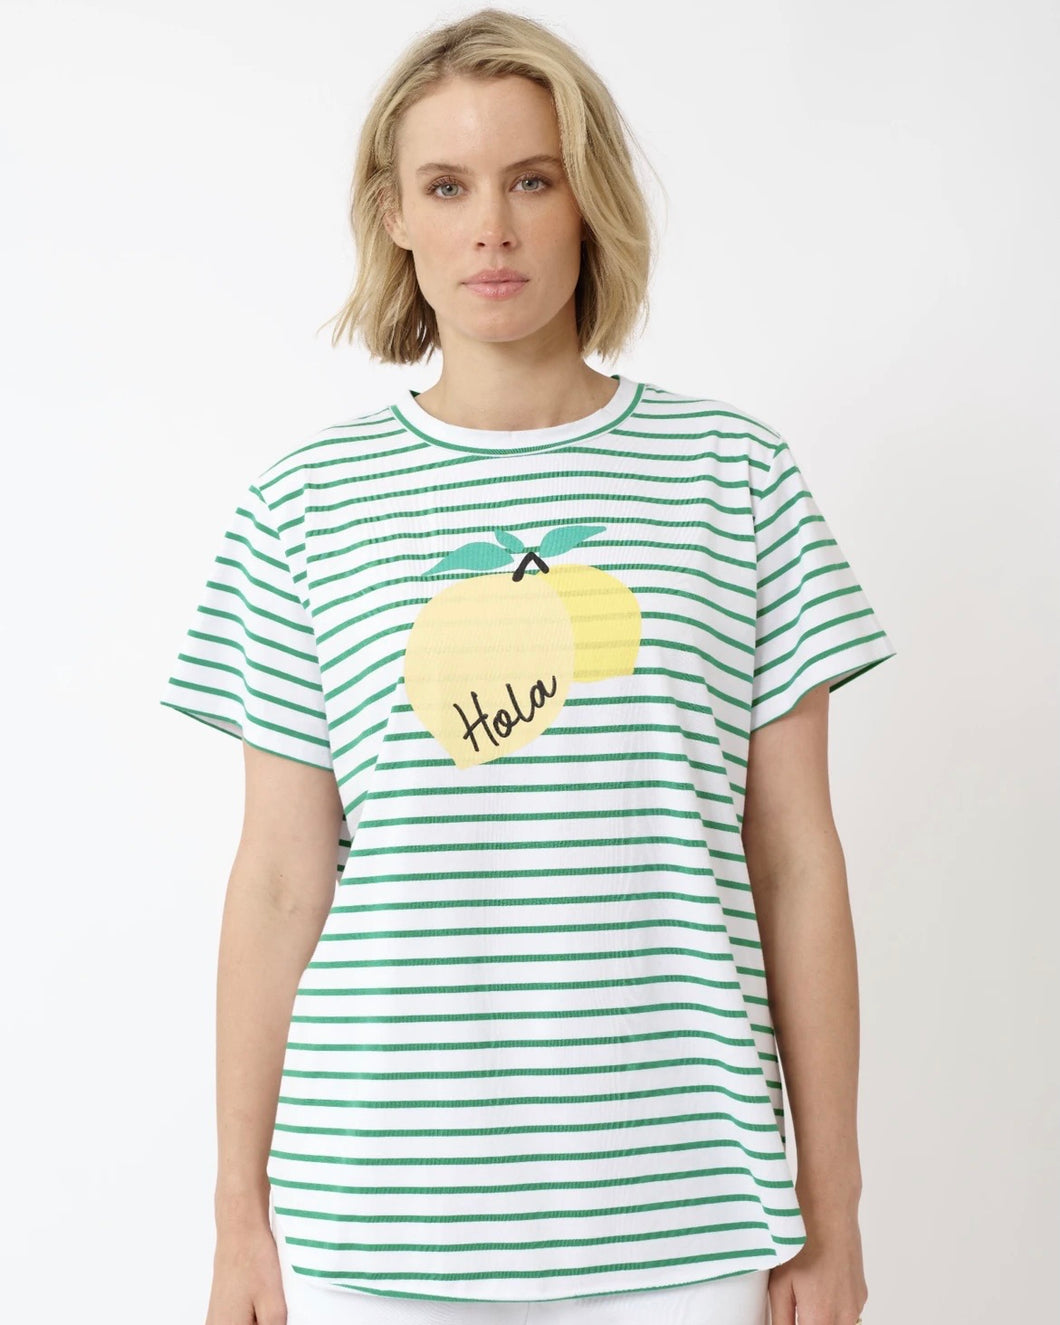 Hola Lemon Tee in White/Emerald by Alessandra